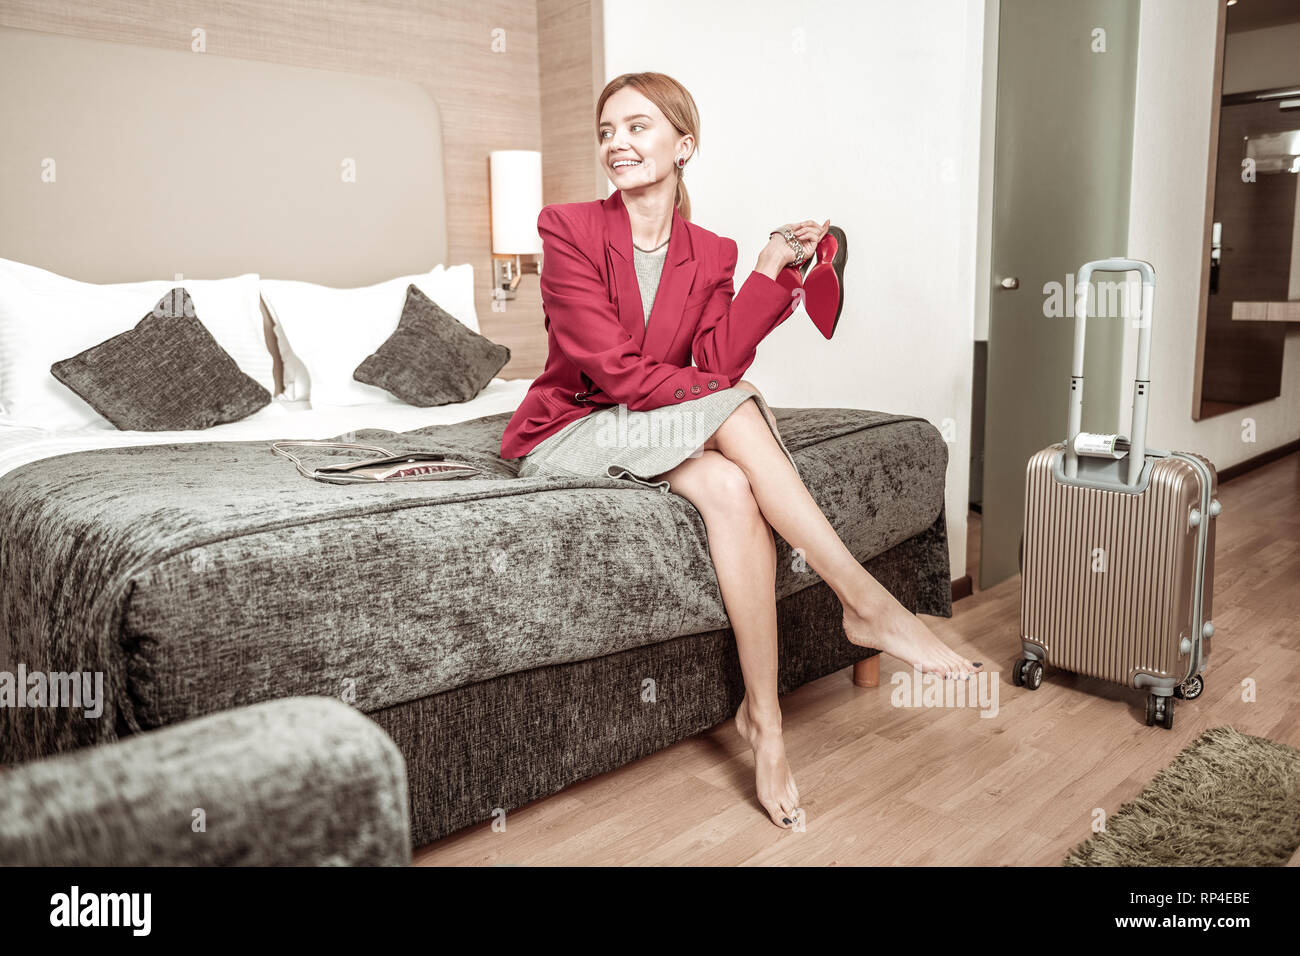 Blonde-haired businesswoman sitting on big comfy bed in hotel - Stock Image